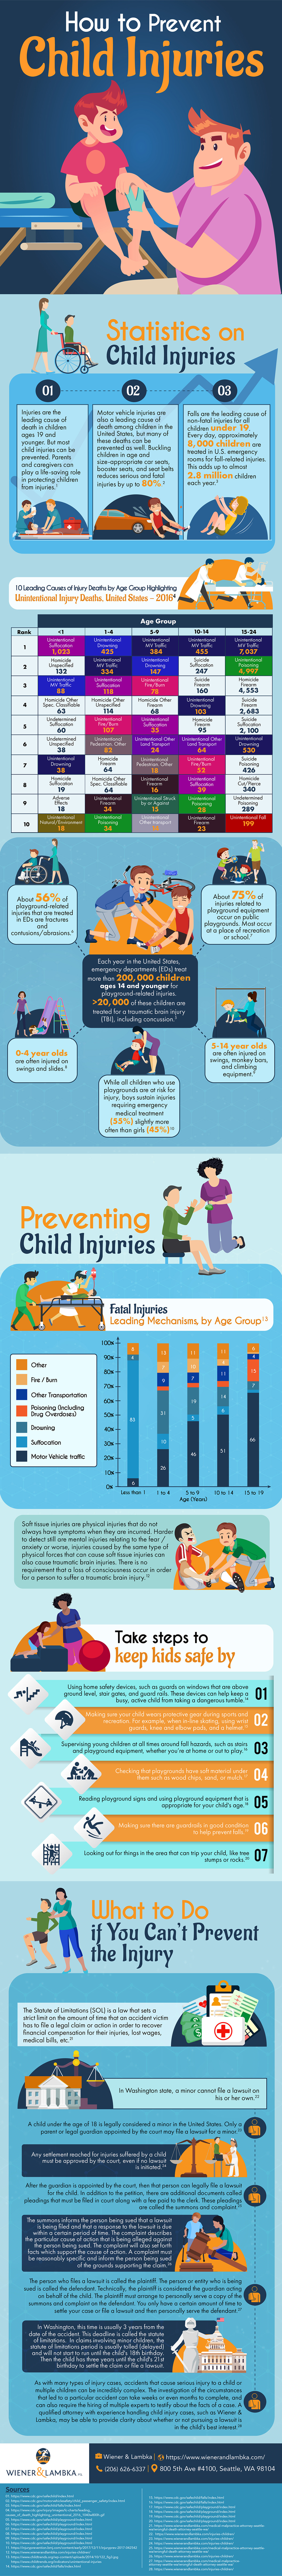 Prevent Child Injury [Infographic]